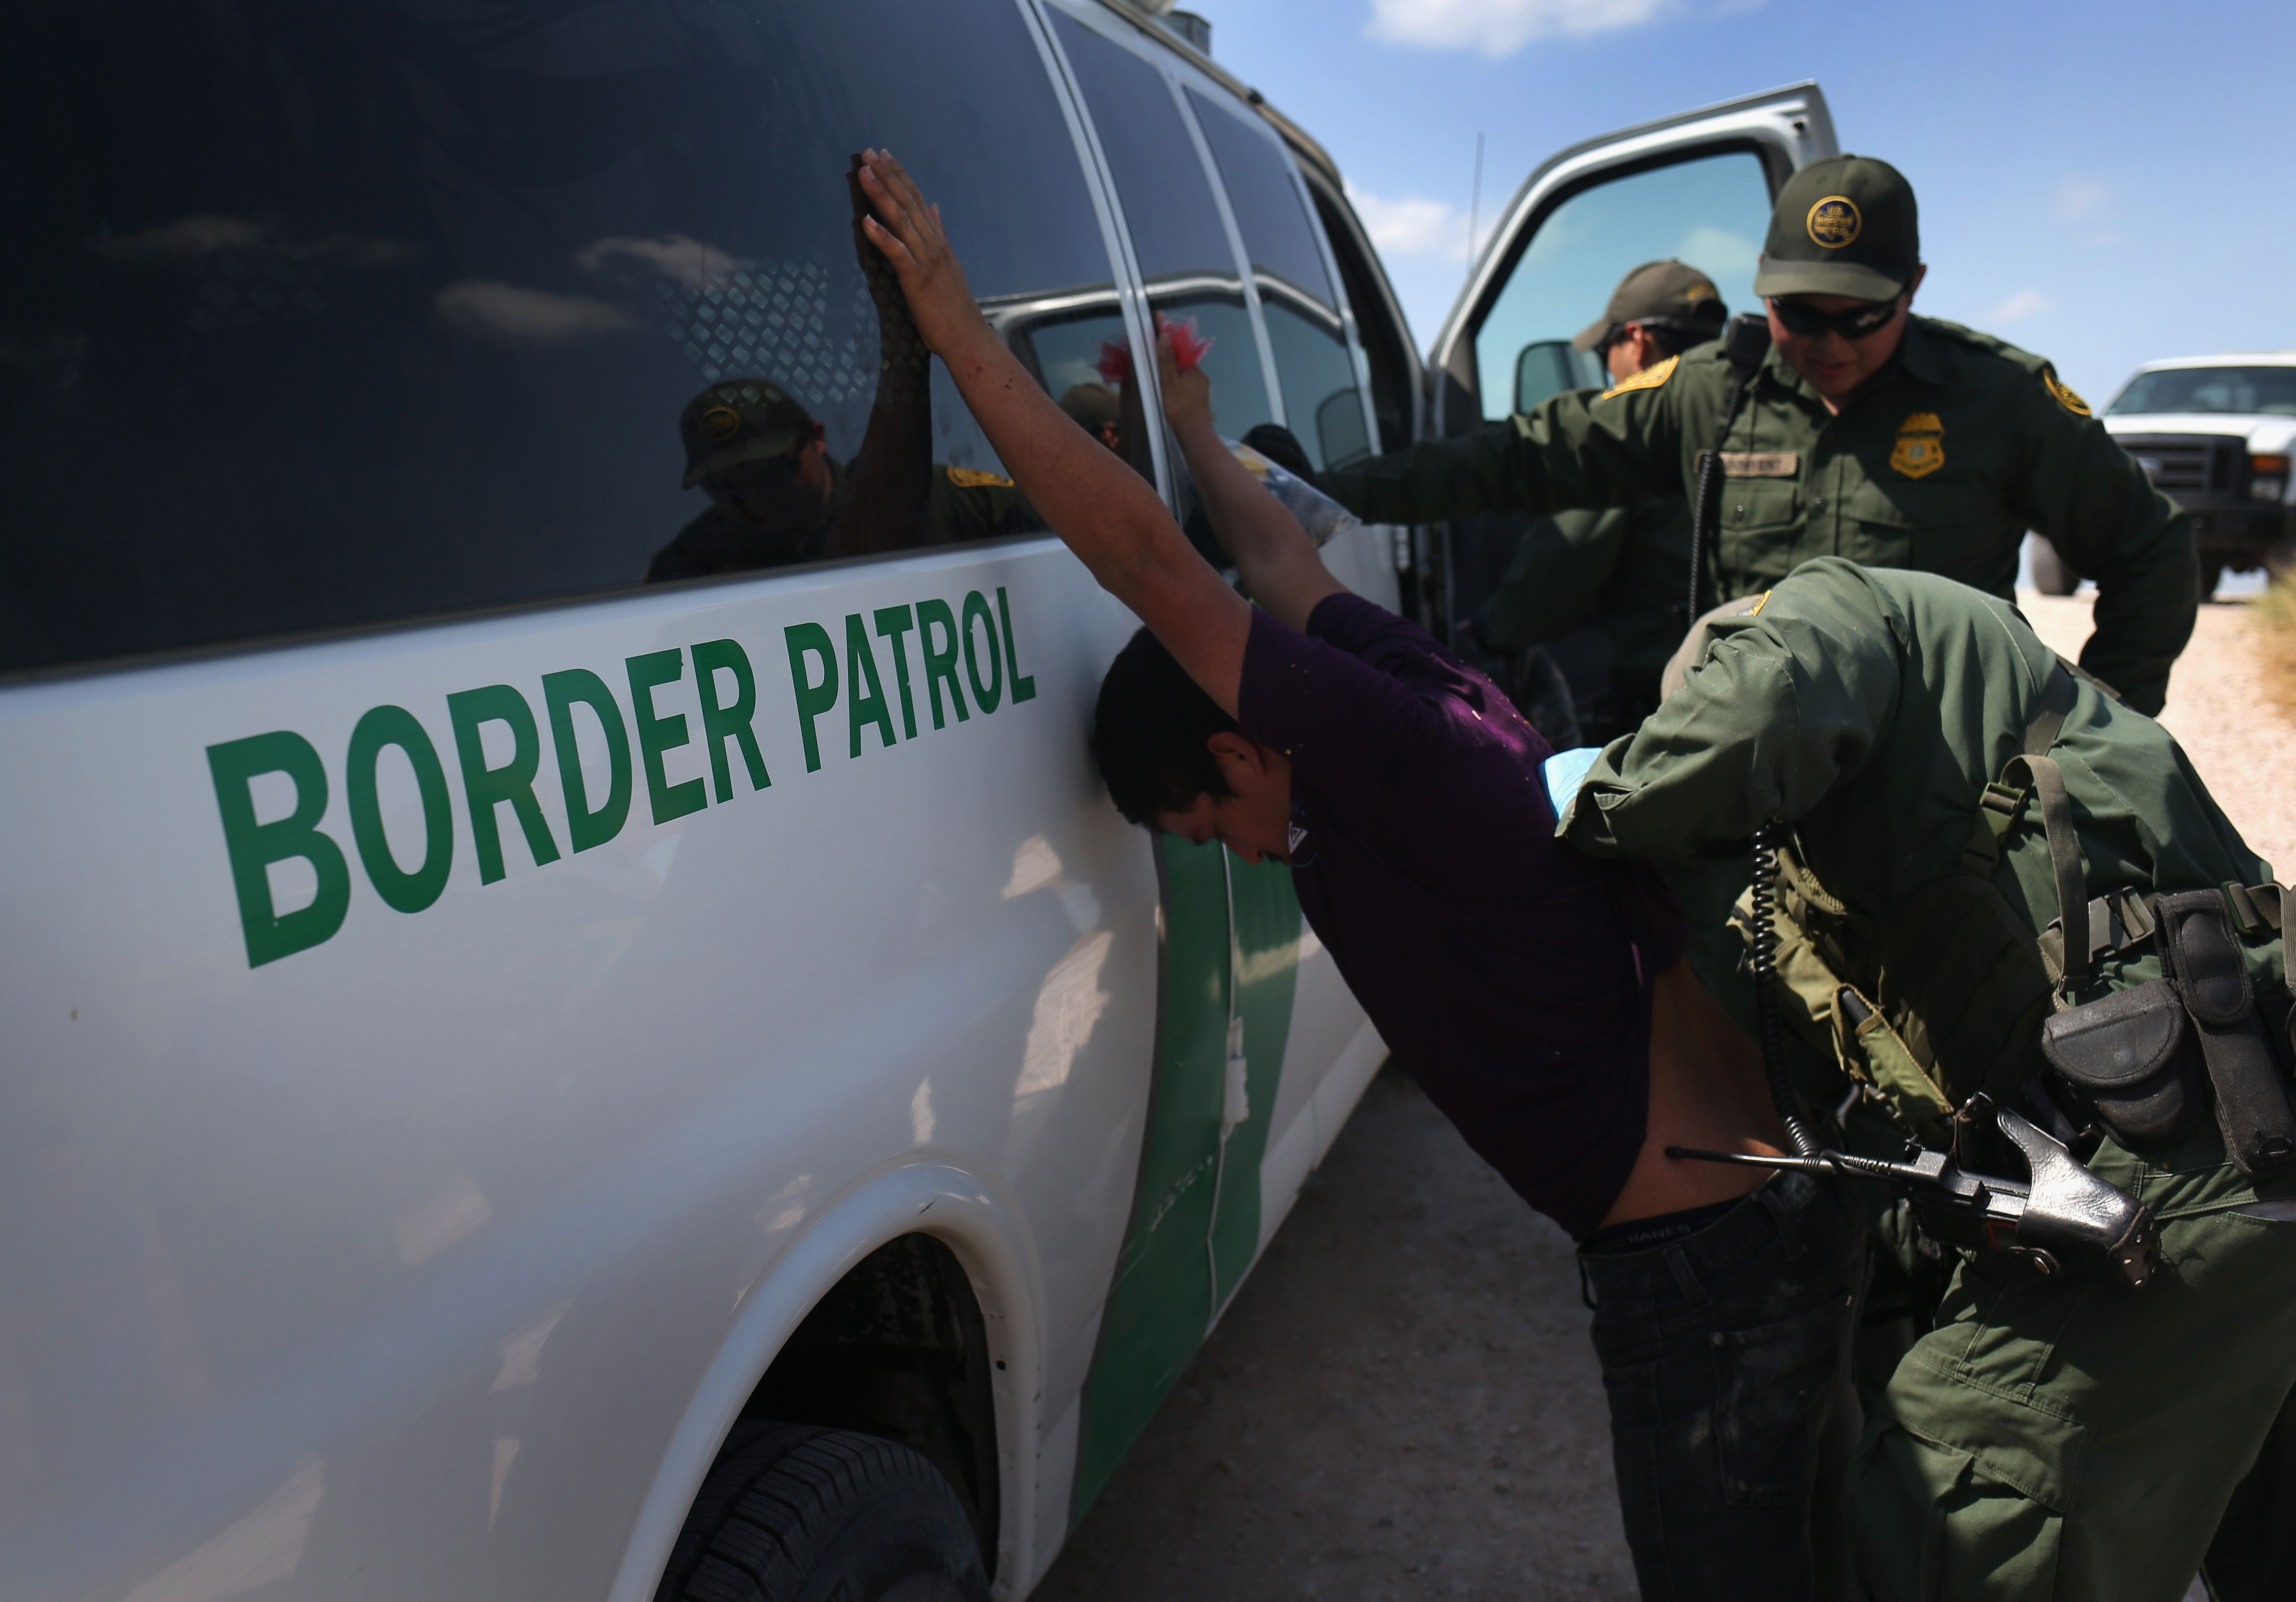 Nearly 30 people who were deported say Border Patrol took their possessions and failed to return them.